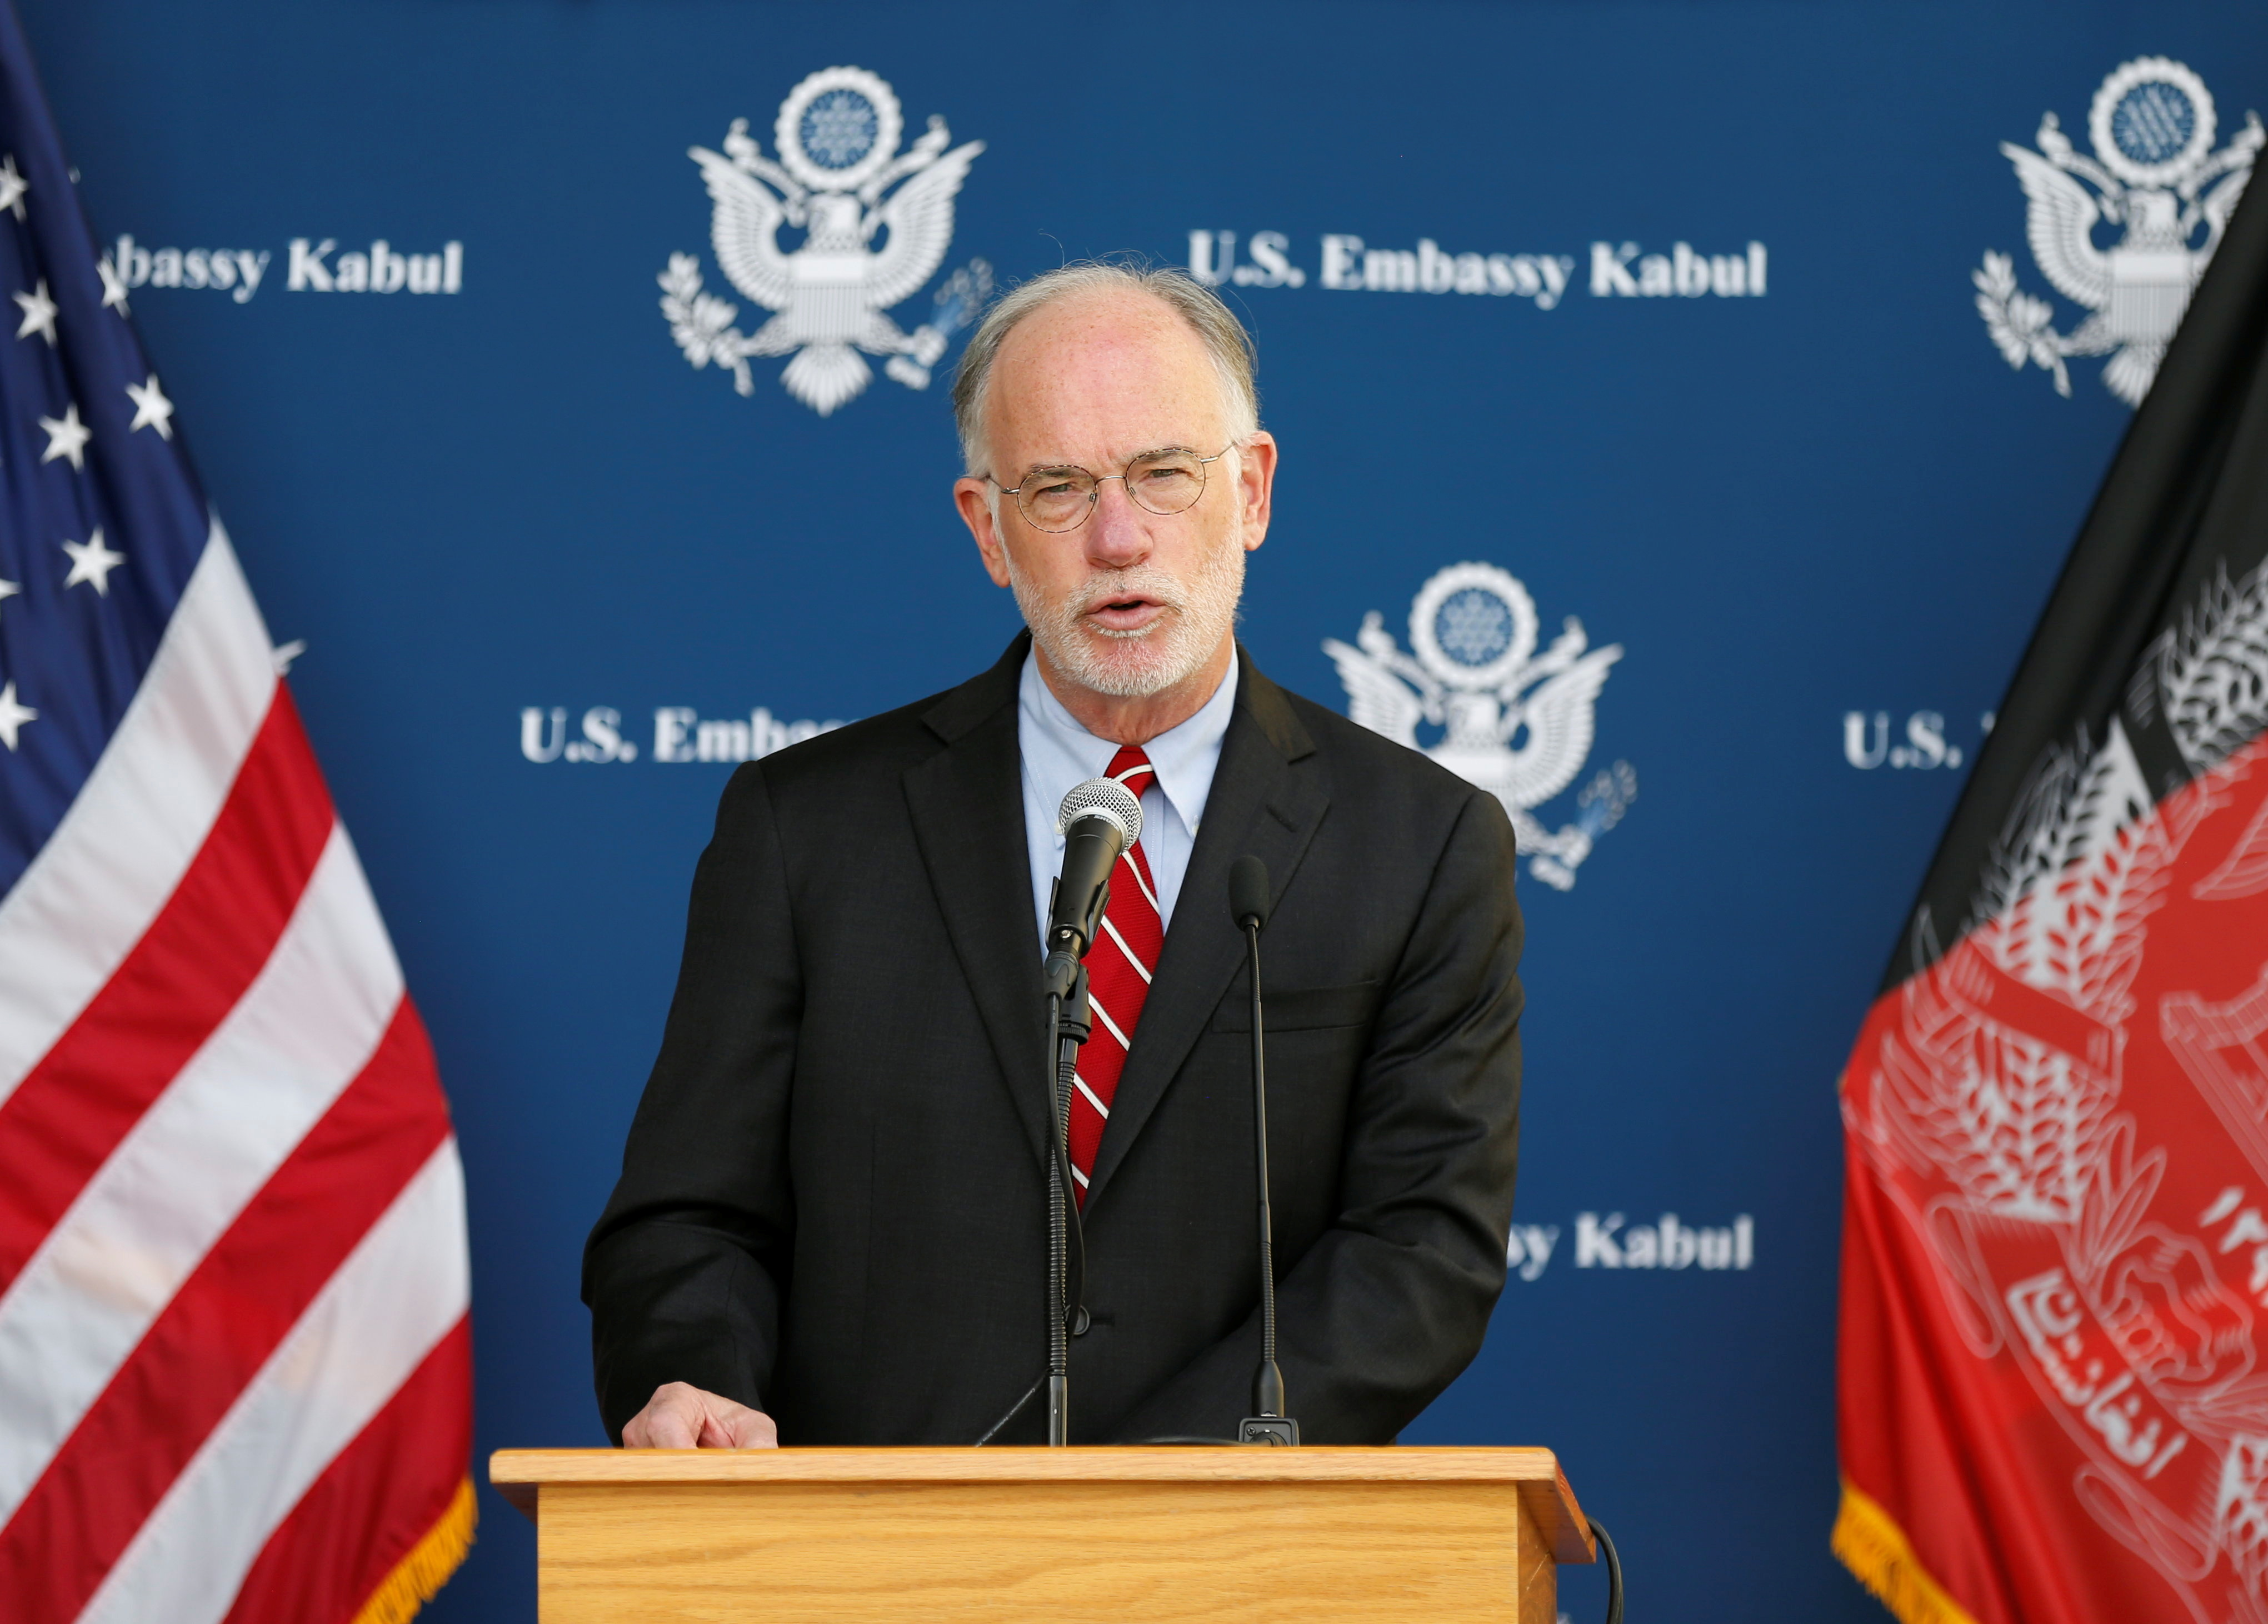 Ambassador Ross Wilson, U.S. Charge D'Affaires, speaks during a press conference at the U.S. Embassy in Kabul, Afghanistan, July 30, 2021. REUTERS/Stringer